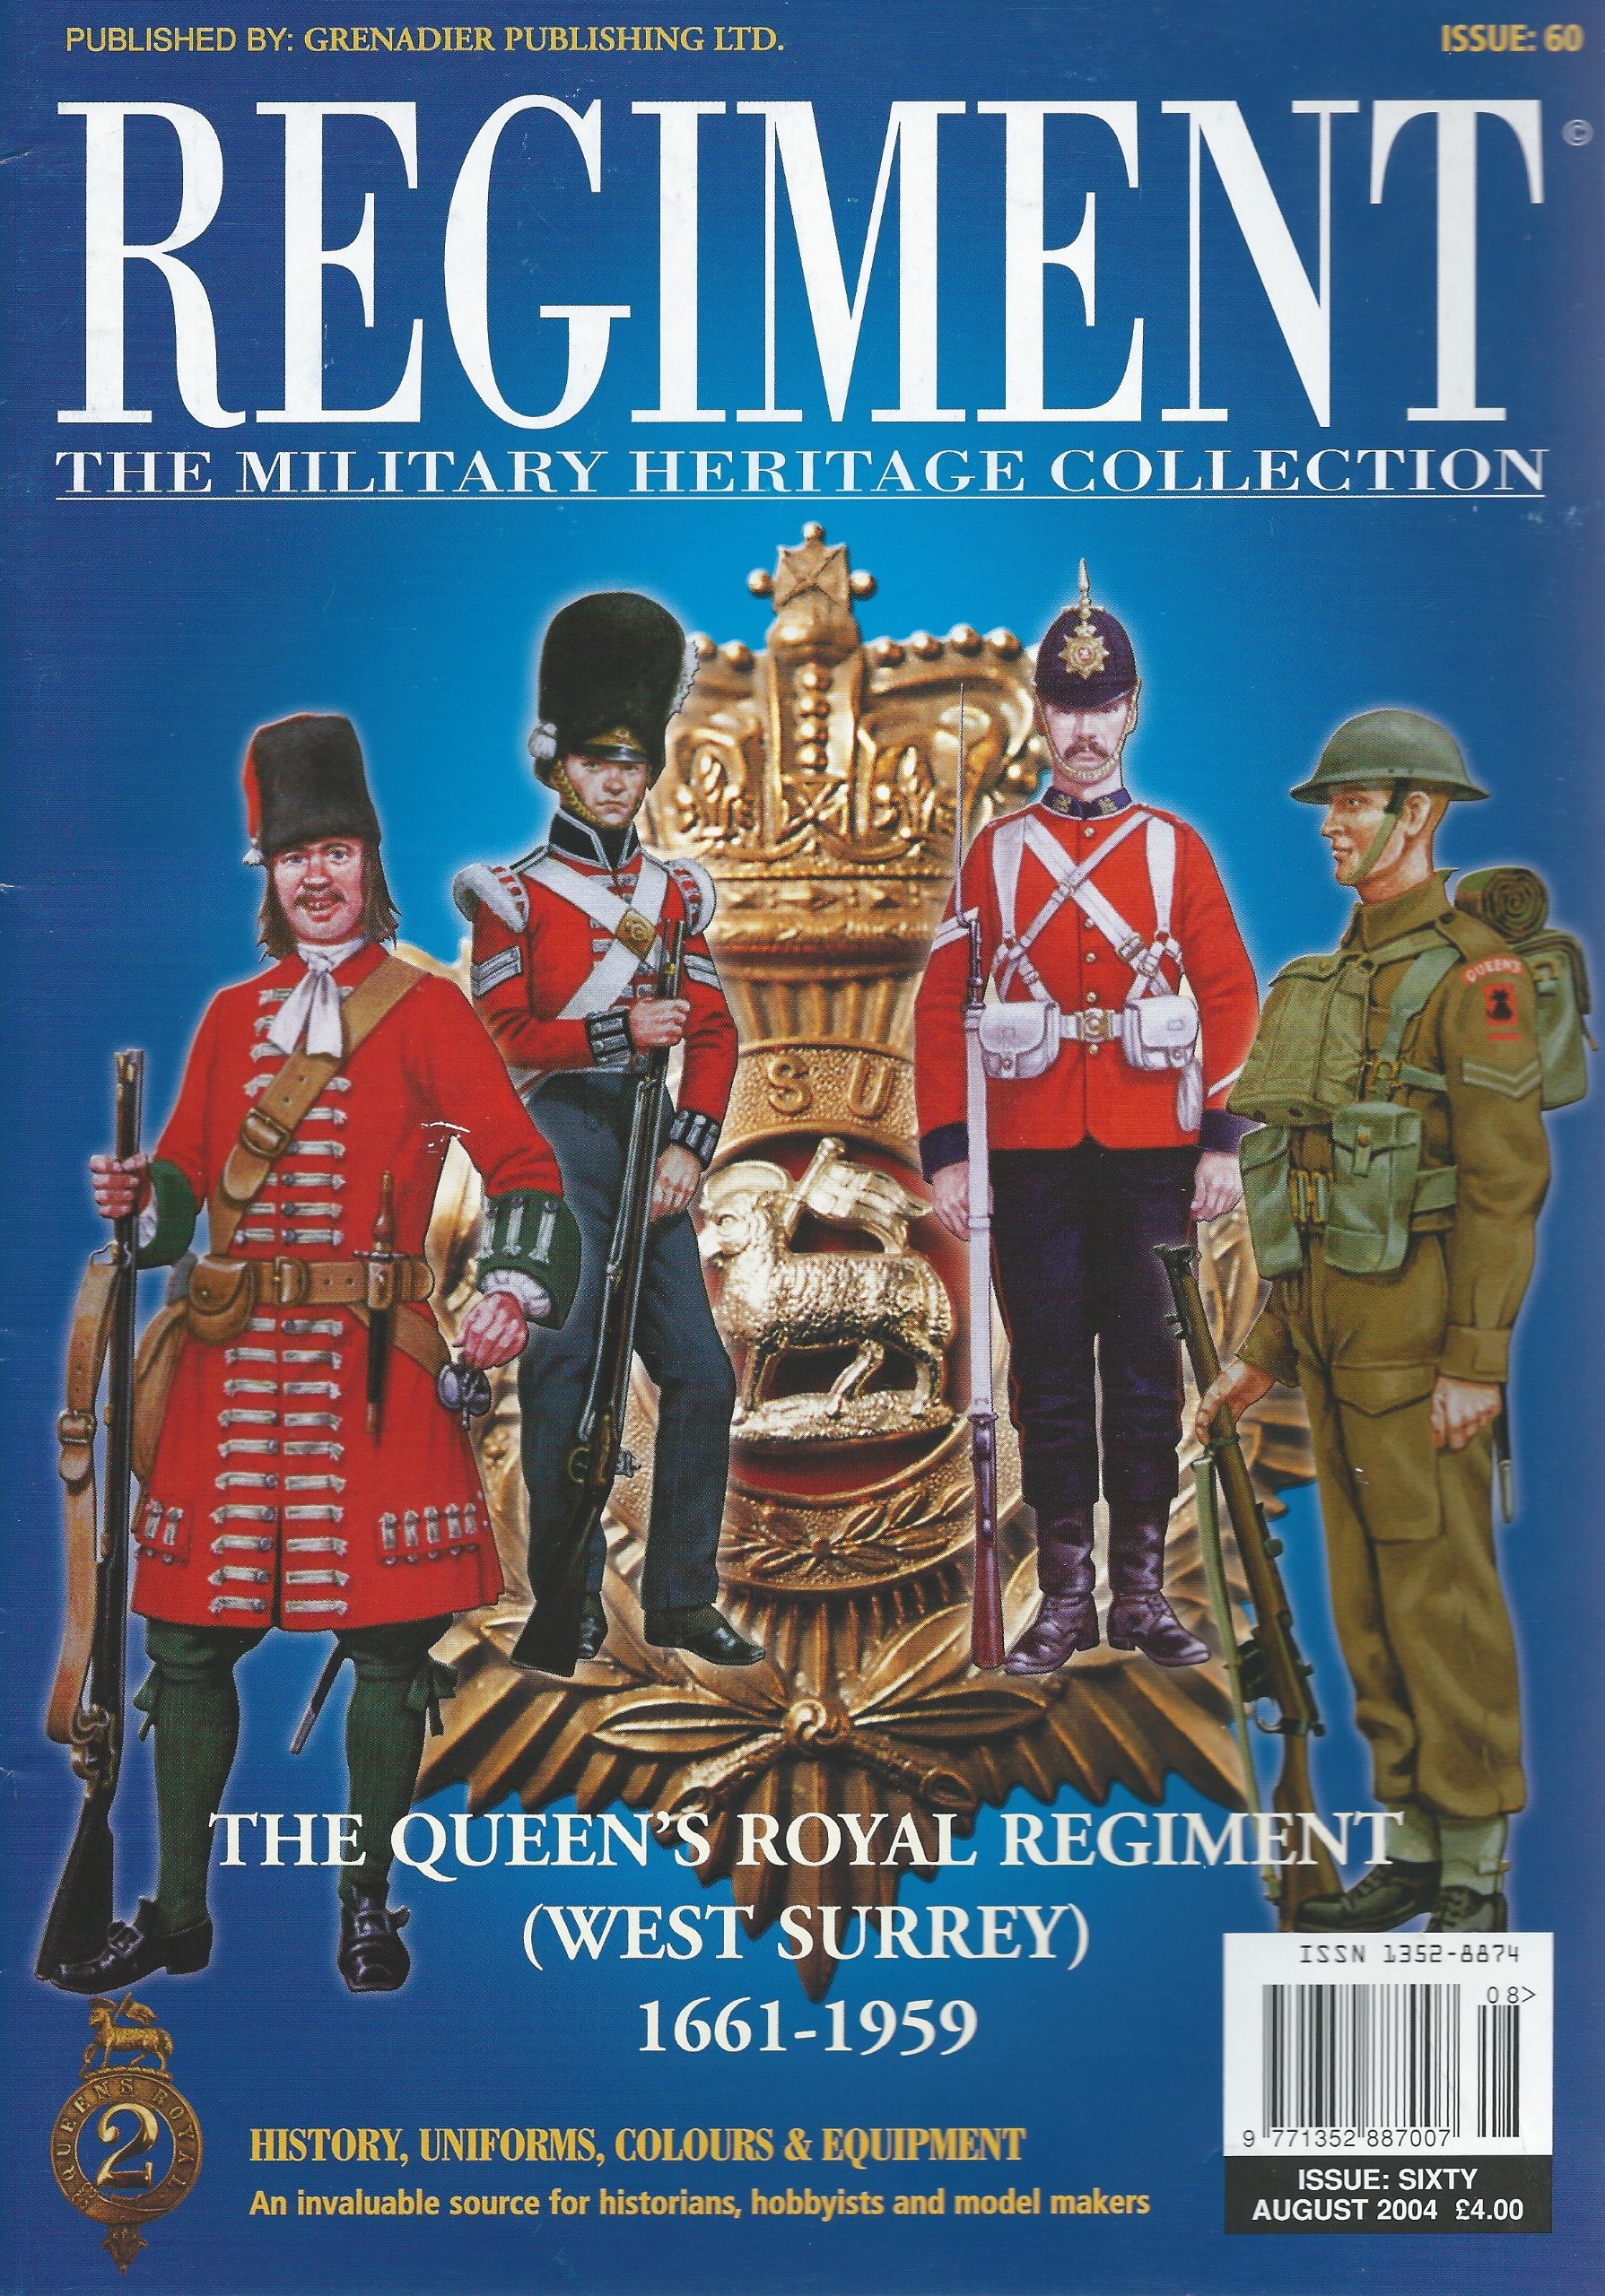 9d85ae59d6b6 Regiment  The Military Heritage Collection